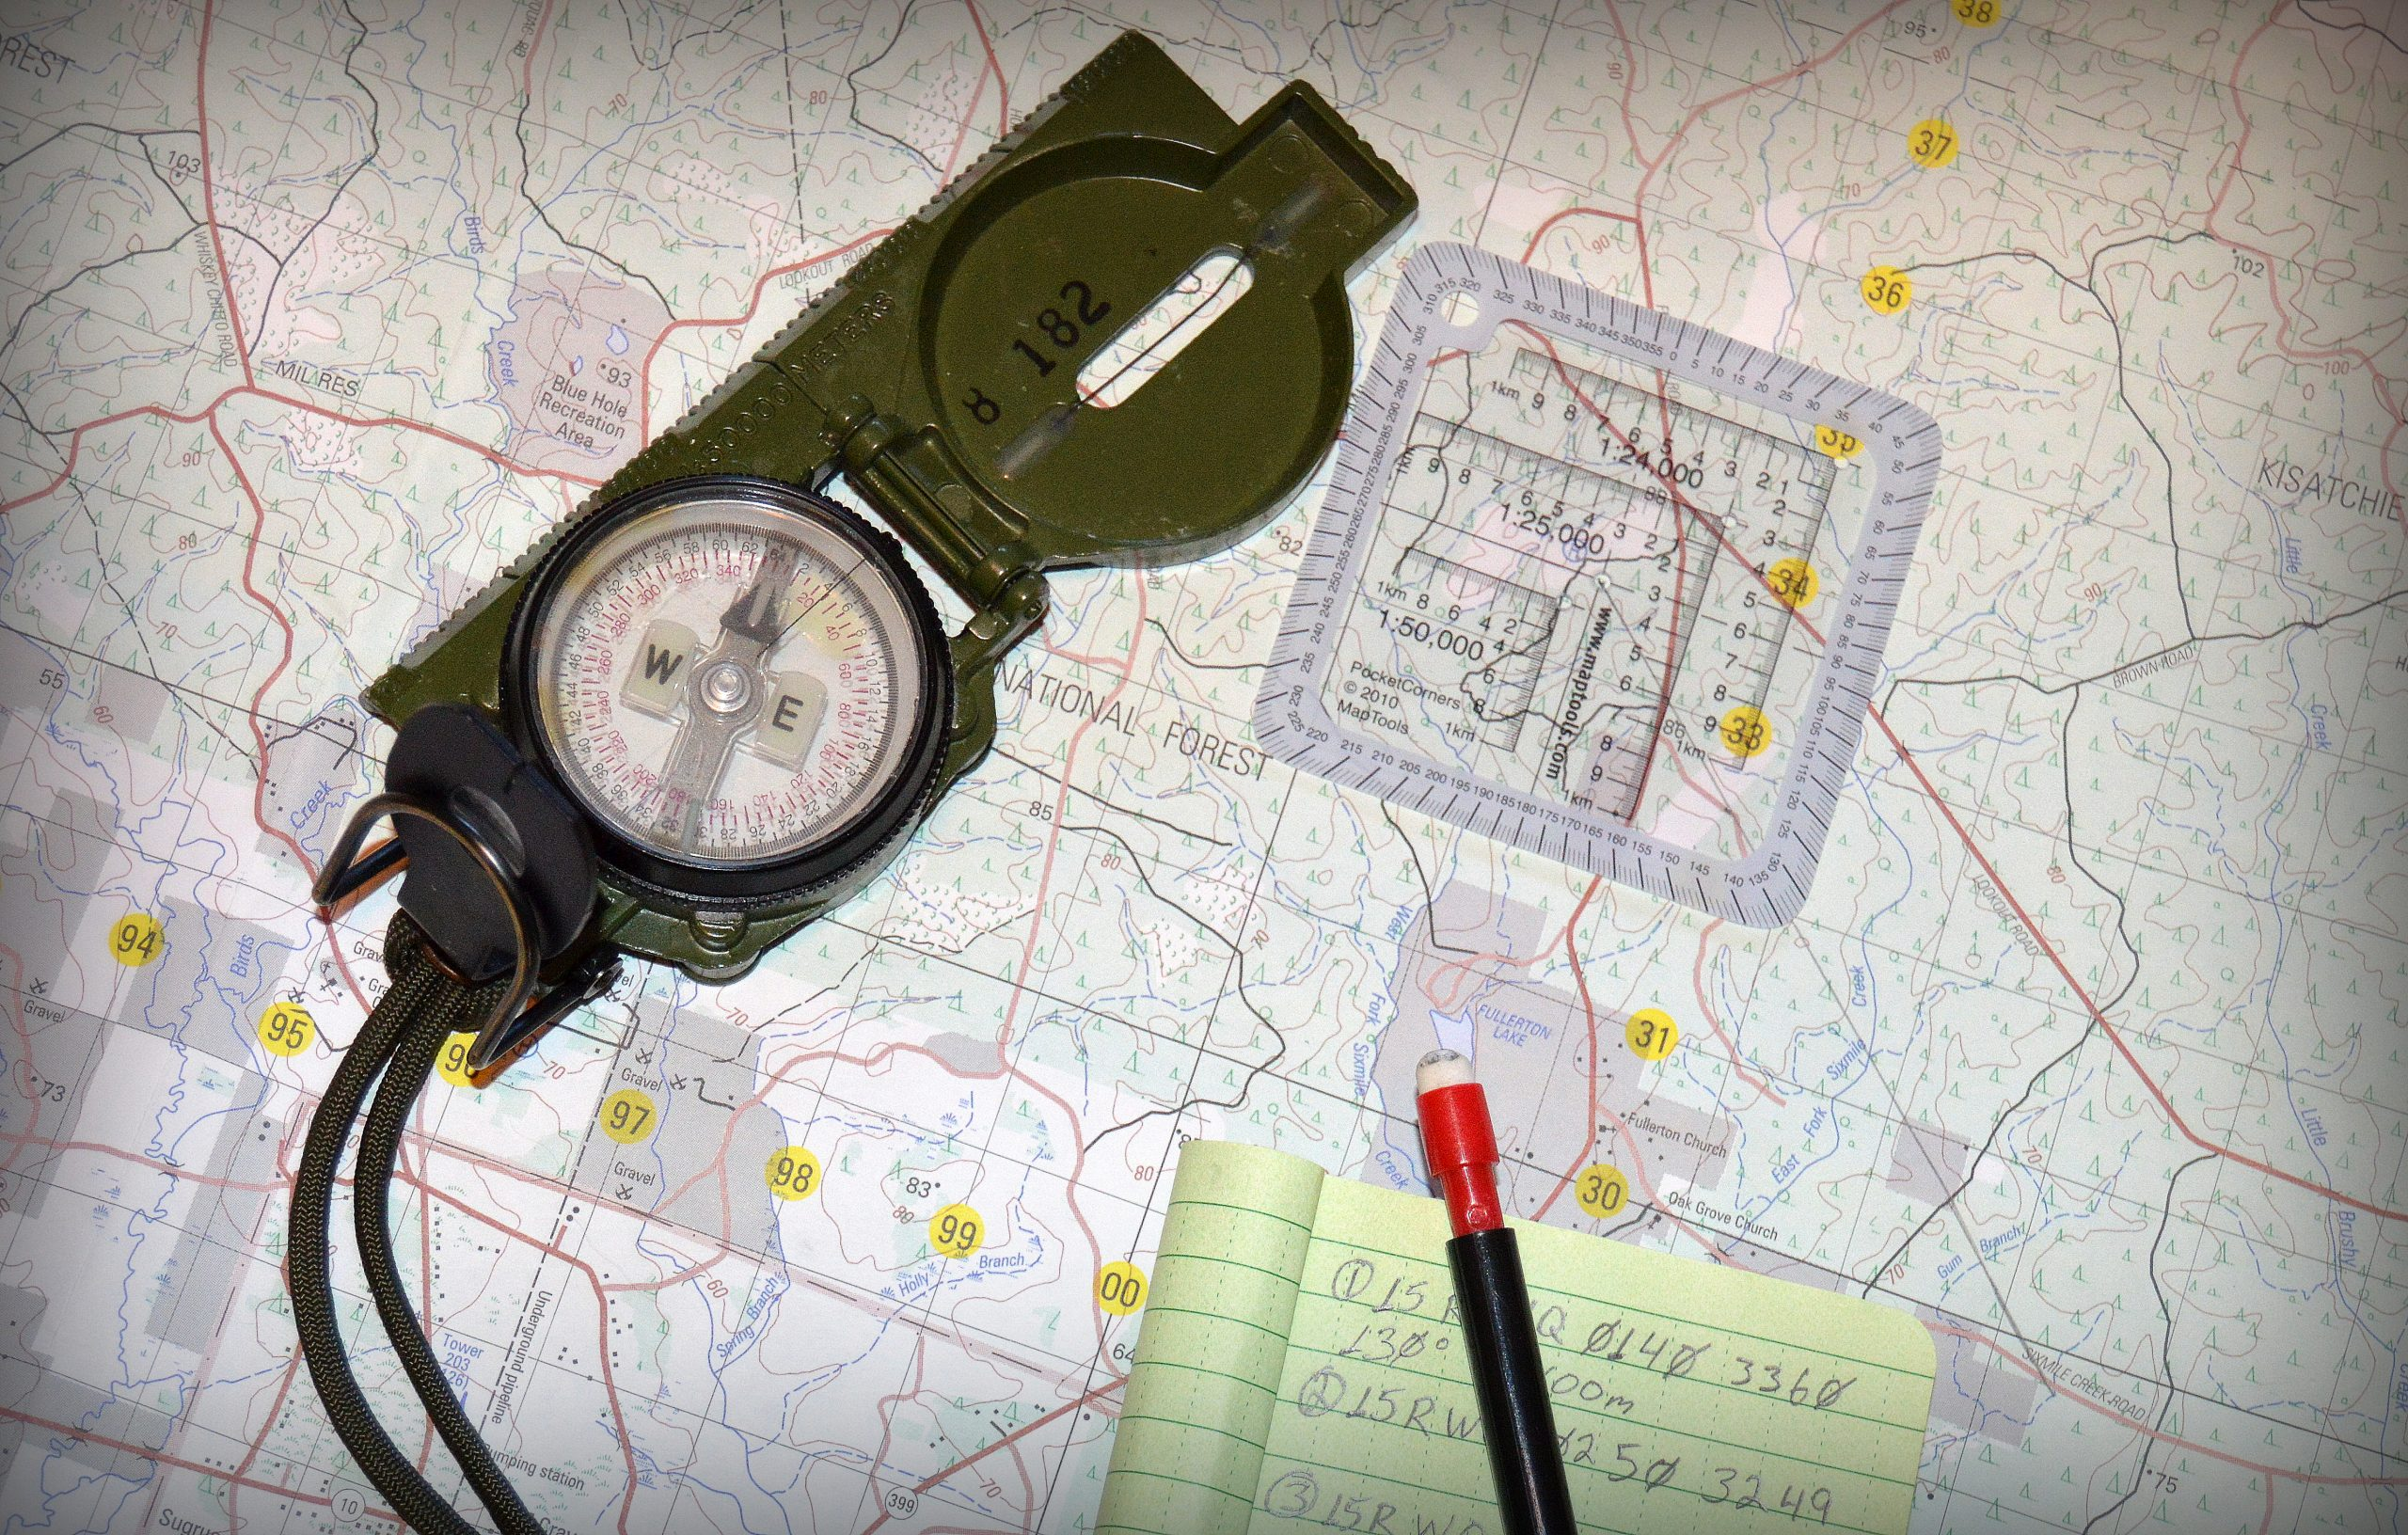 Basic tools used for Map Reading and Land Navigation are the Map, Protractor, Lensatic Compass, Pencil and Paper.